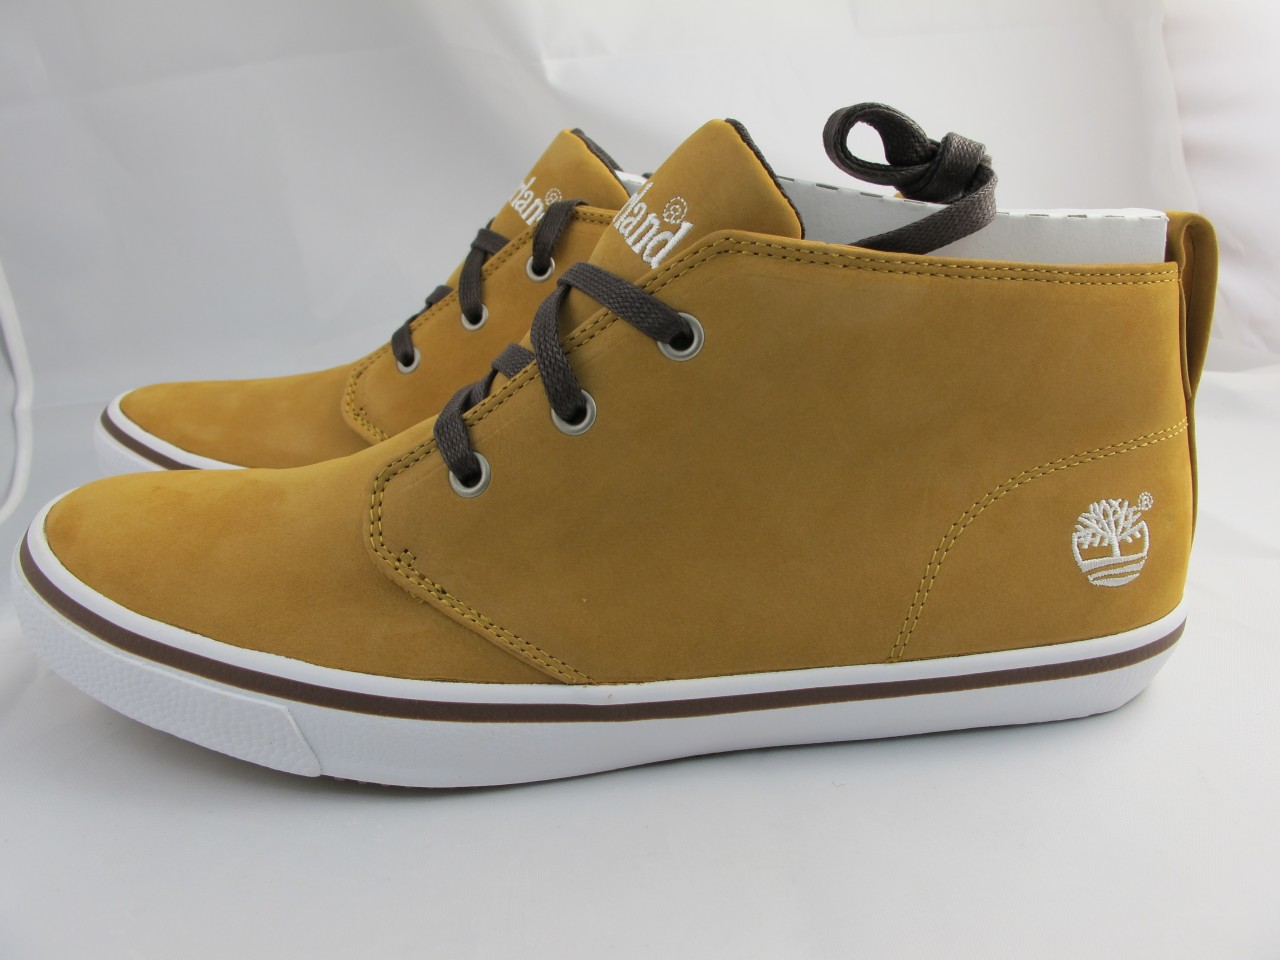 NEW-MENS-TIMBERLAND-EKADVTR-SUMCHK-5314R-WHEAT